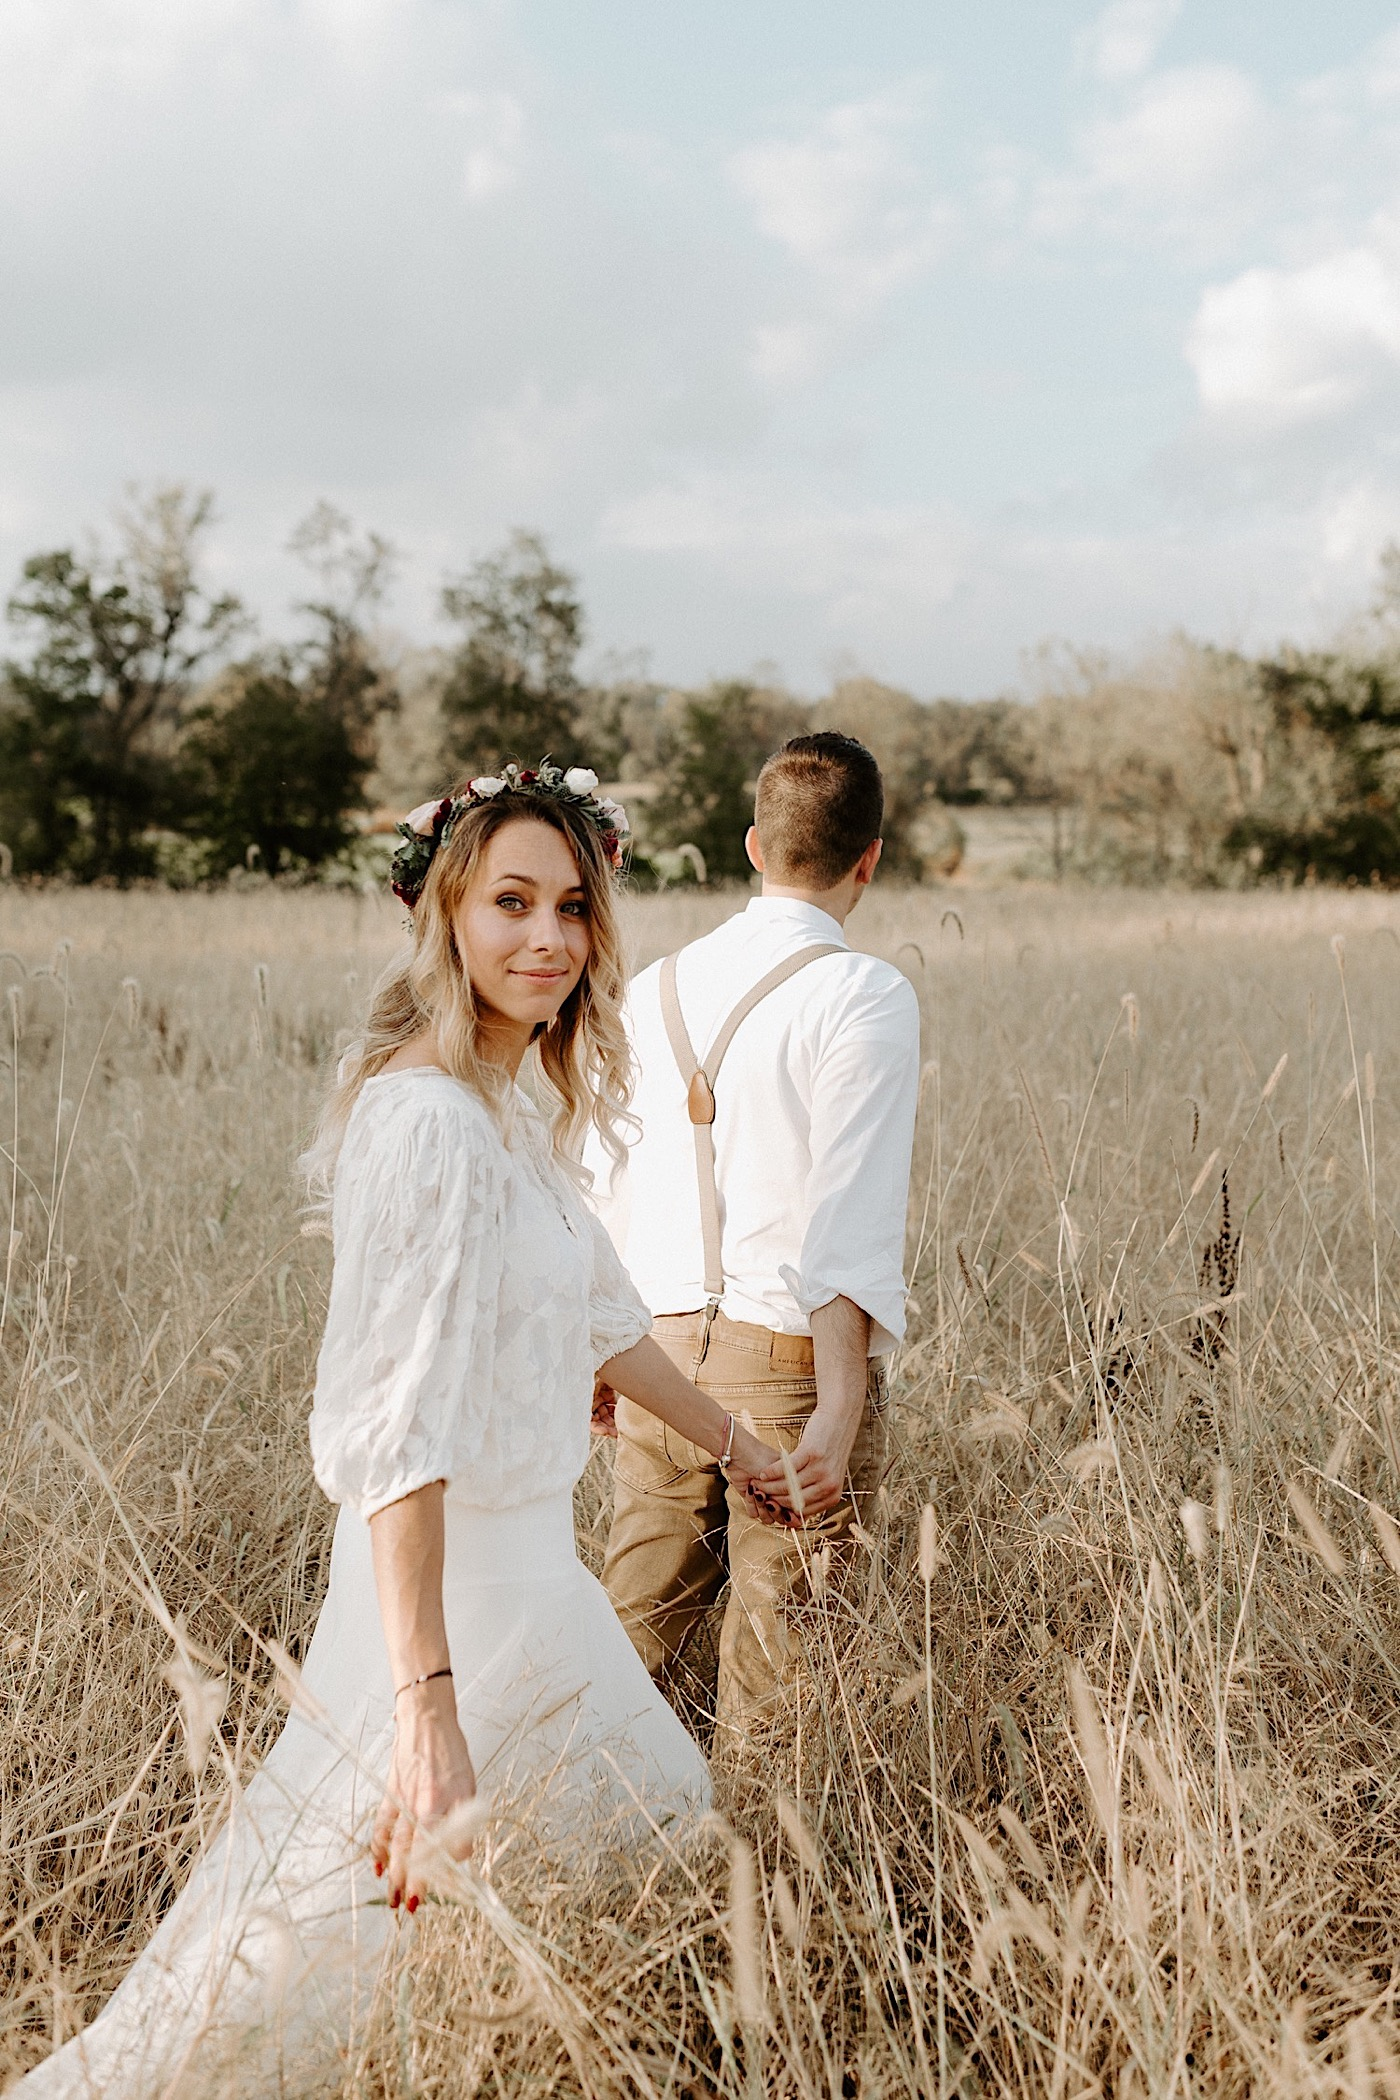 Woolverton Inn Elopement NJ Wedding Photographer Boho Wedding 034